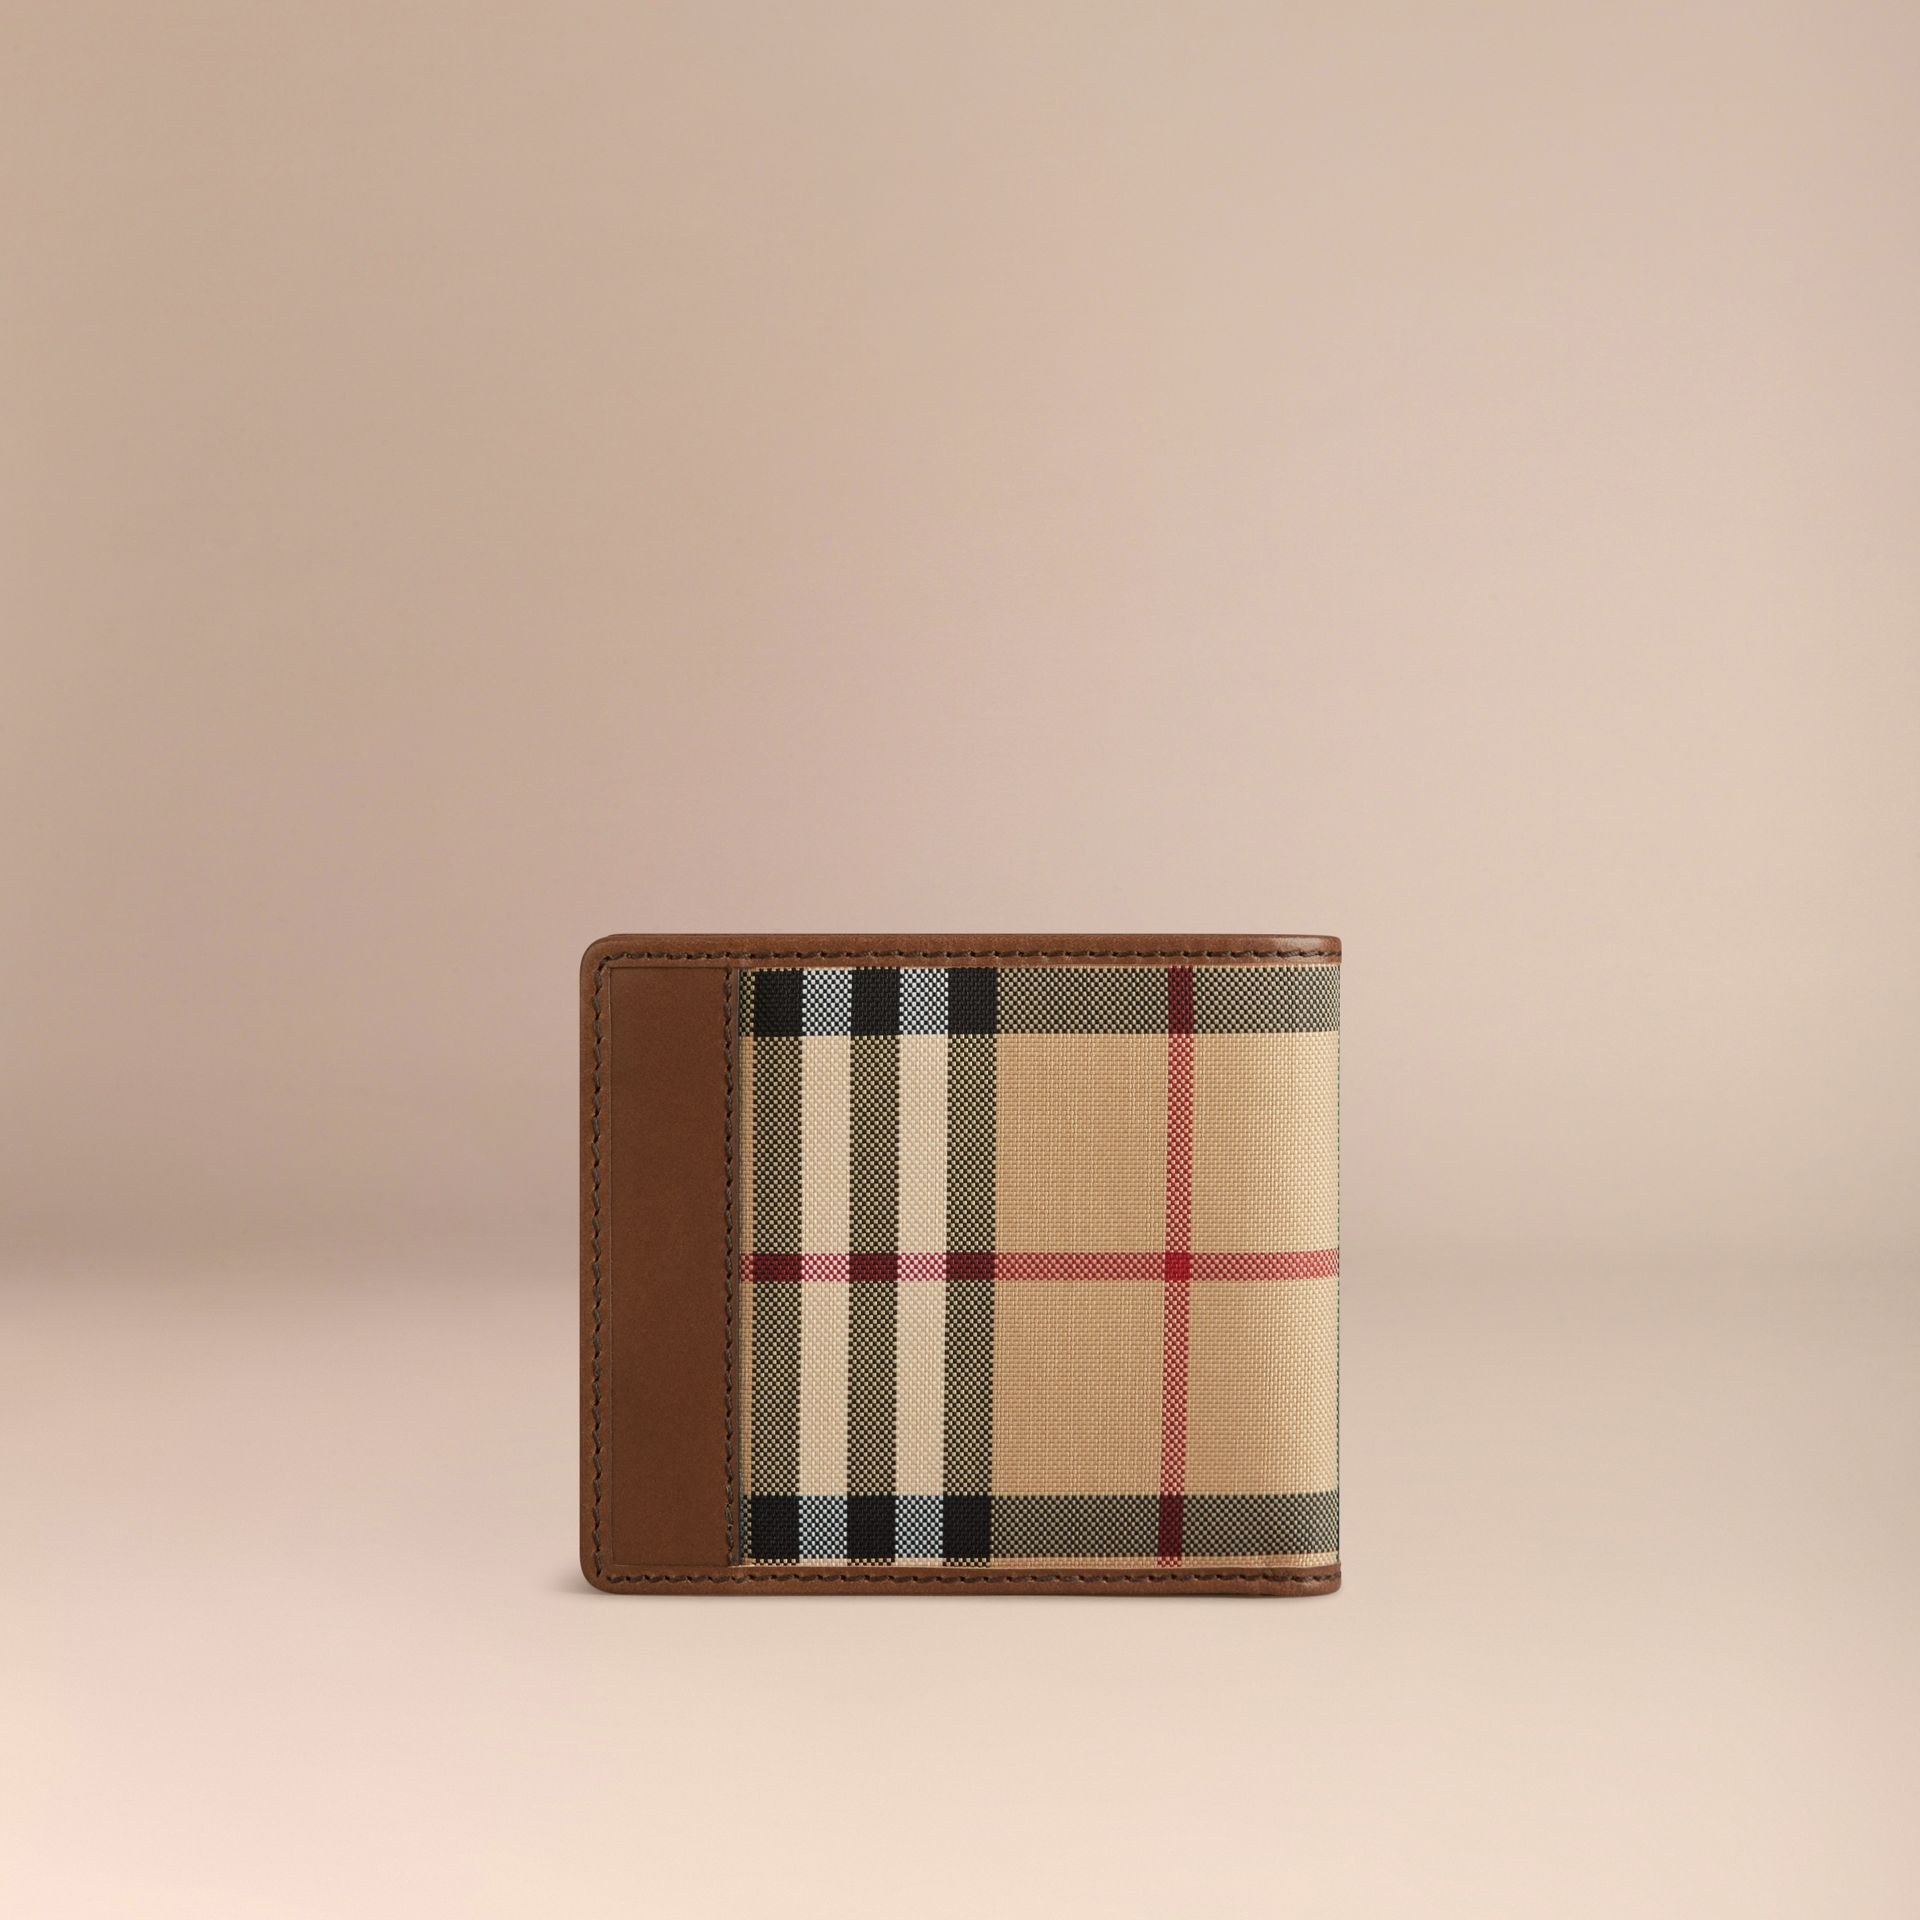 Tan Horseferry Check Folding Wallet Tan - gallery image 3